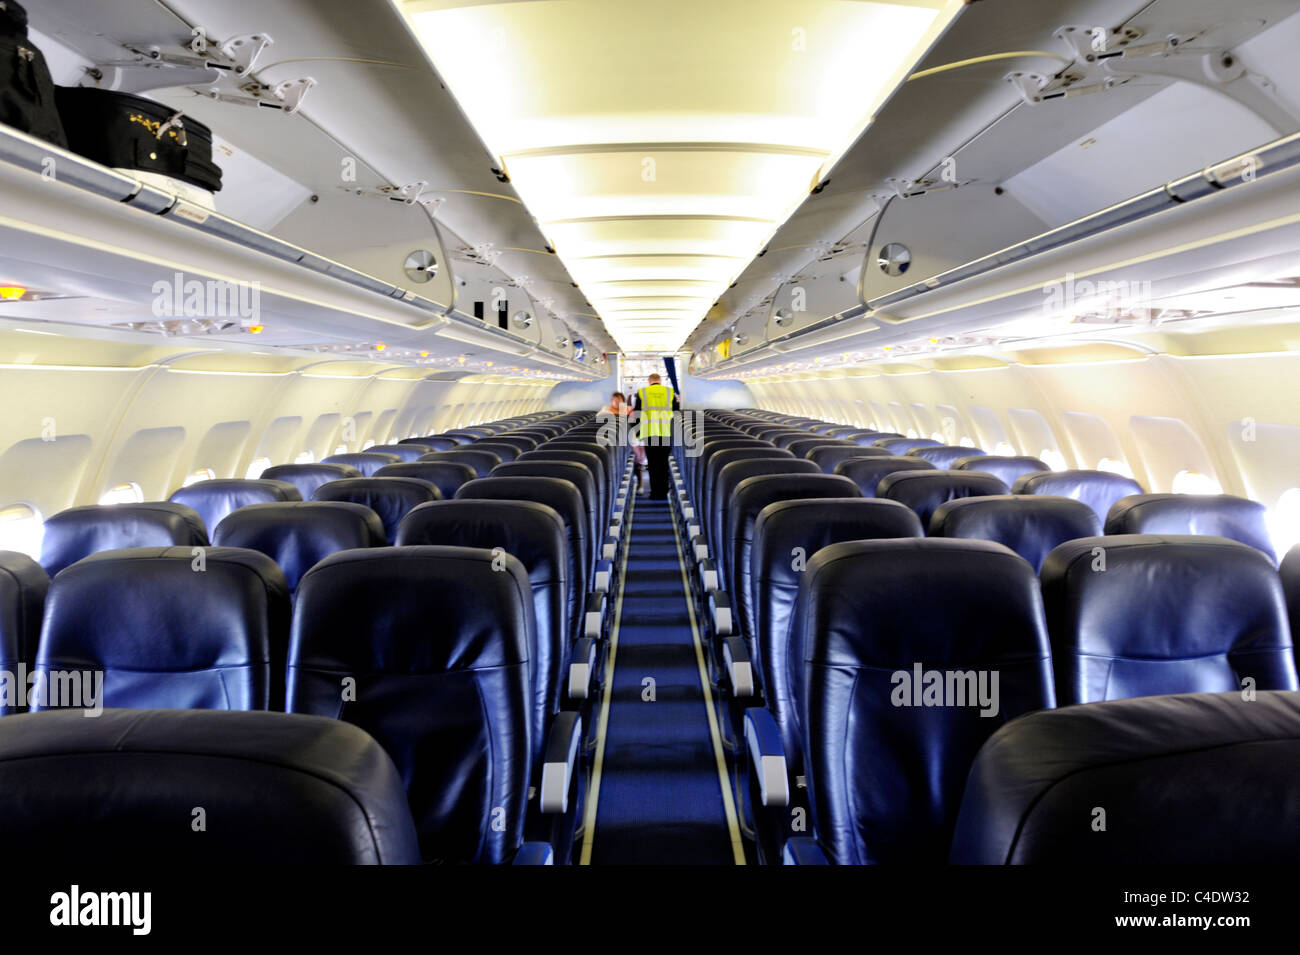 Airbus A320 Plane Inside Cabin Stock Photos & Airbus A320 Plane ...